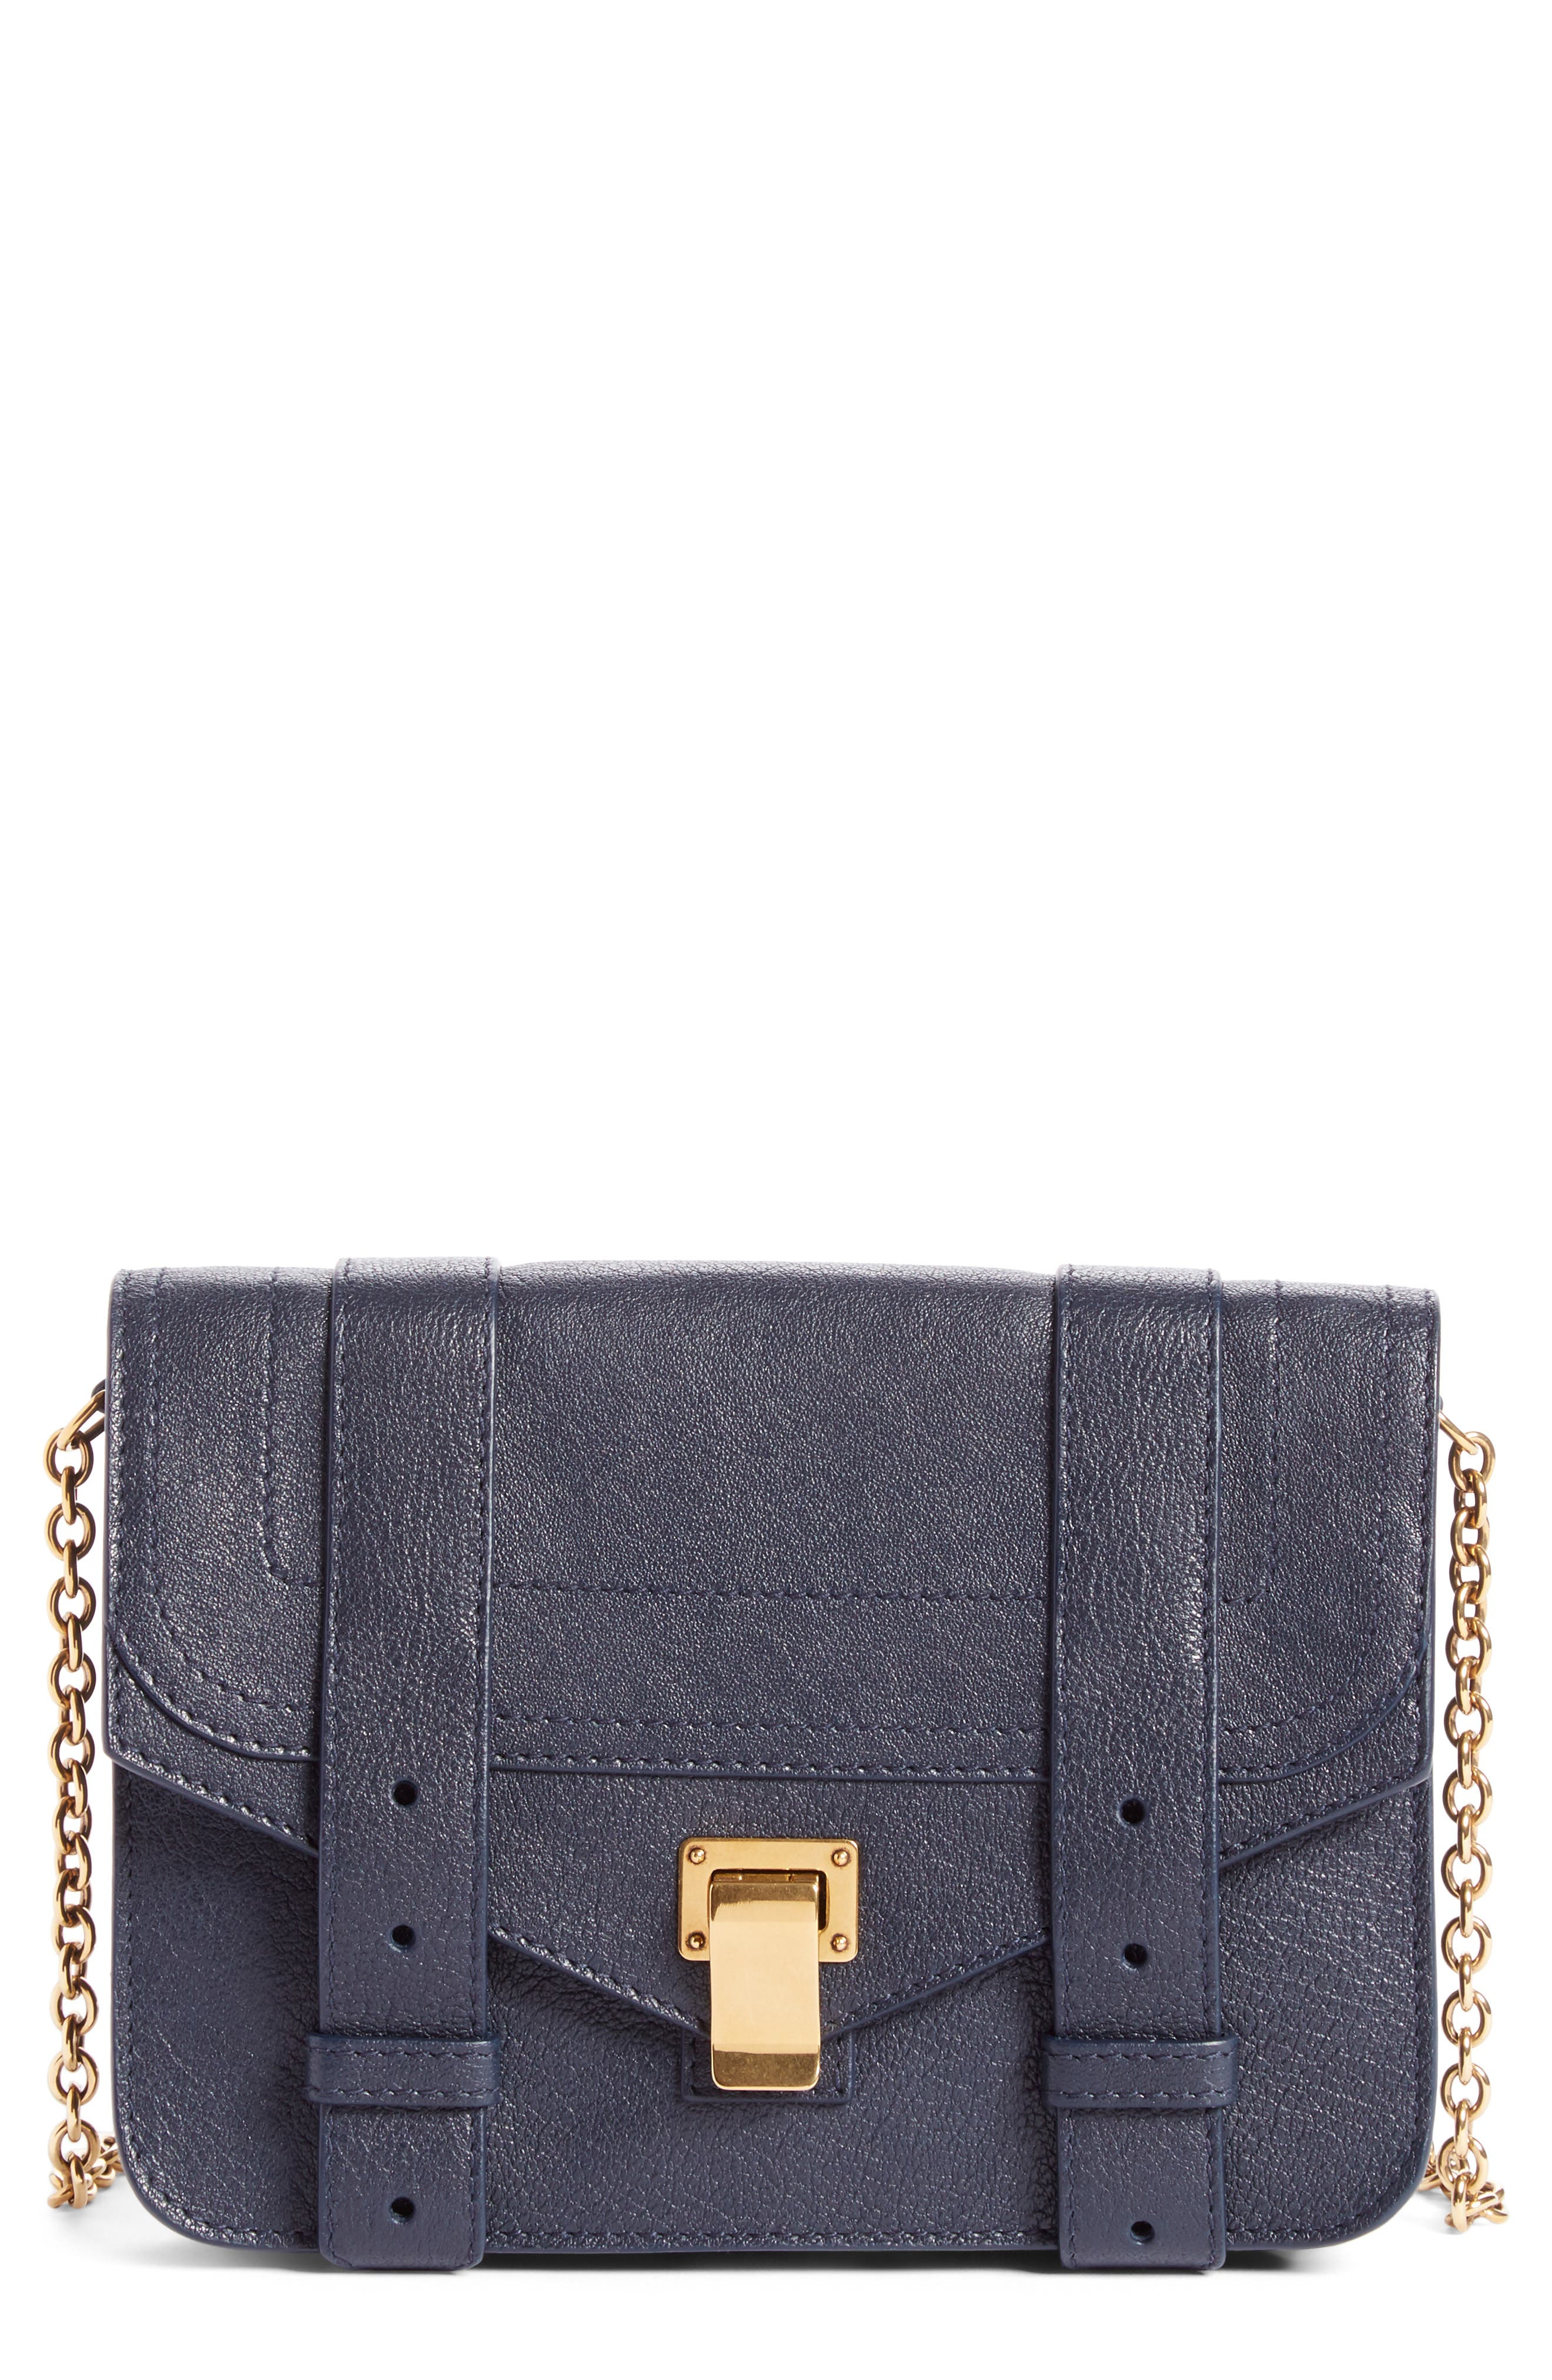 PS1 Lambskin Leather Chain Wallet,                             Main thumbnail 1, color,                             Midnight